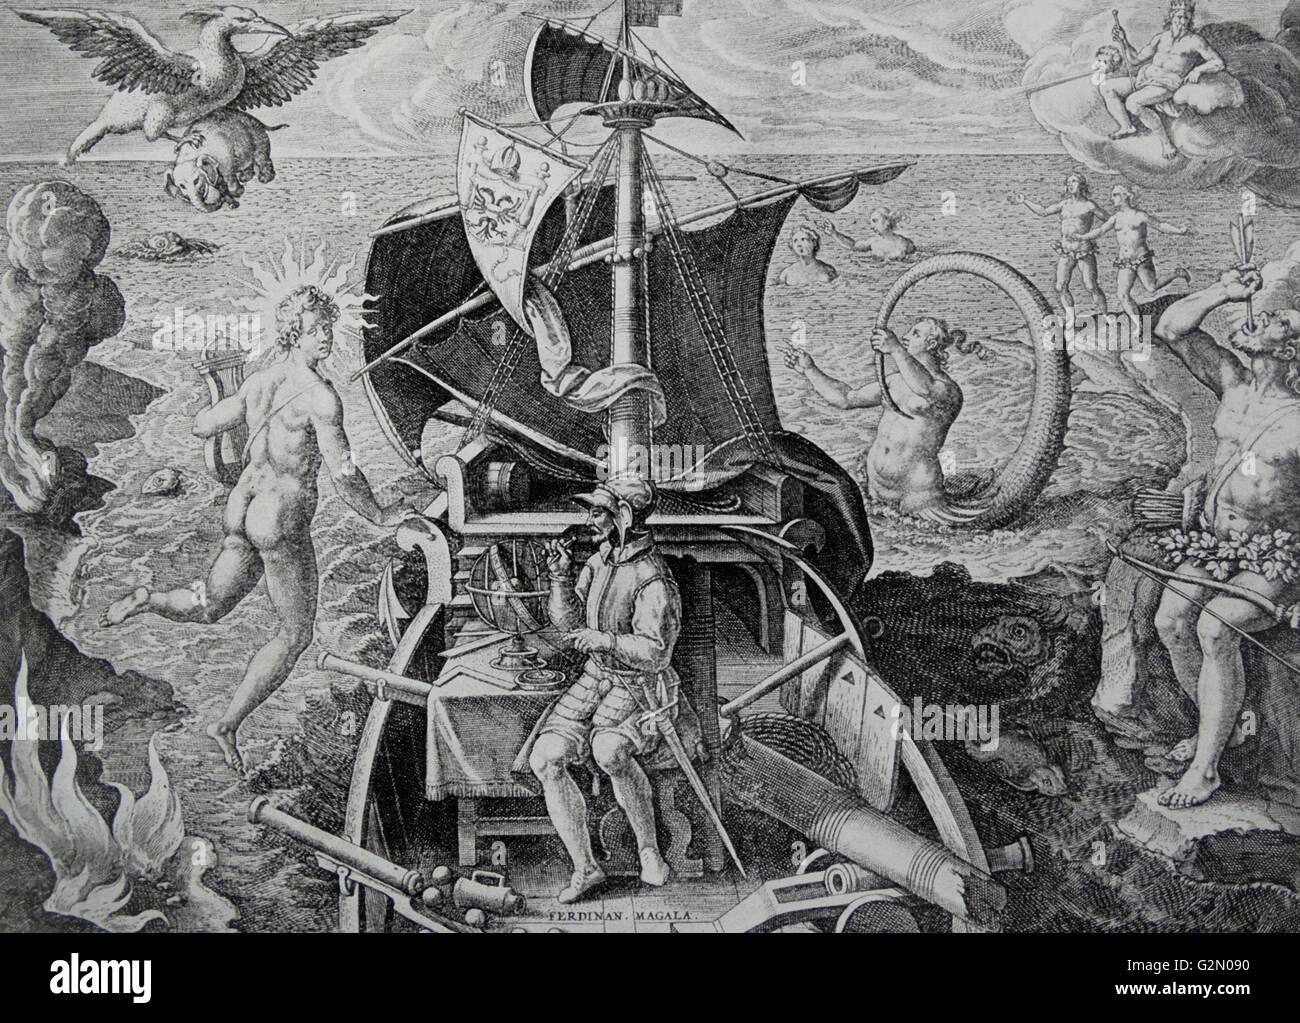 the discovery of the Magellan Straits - Stock Image